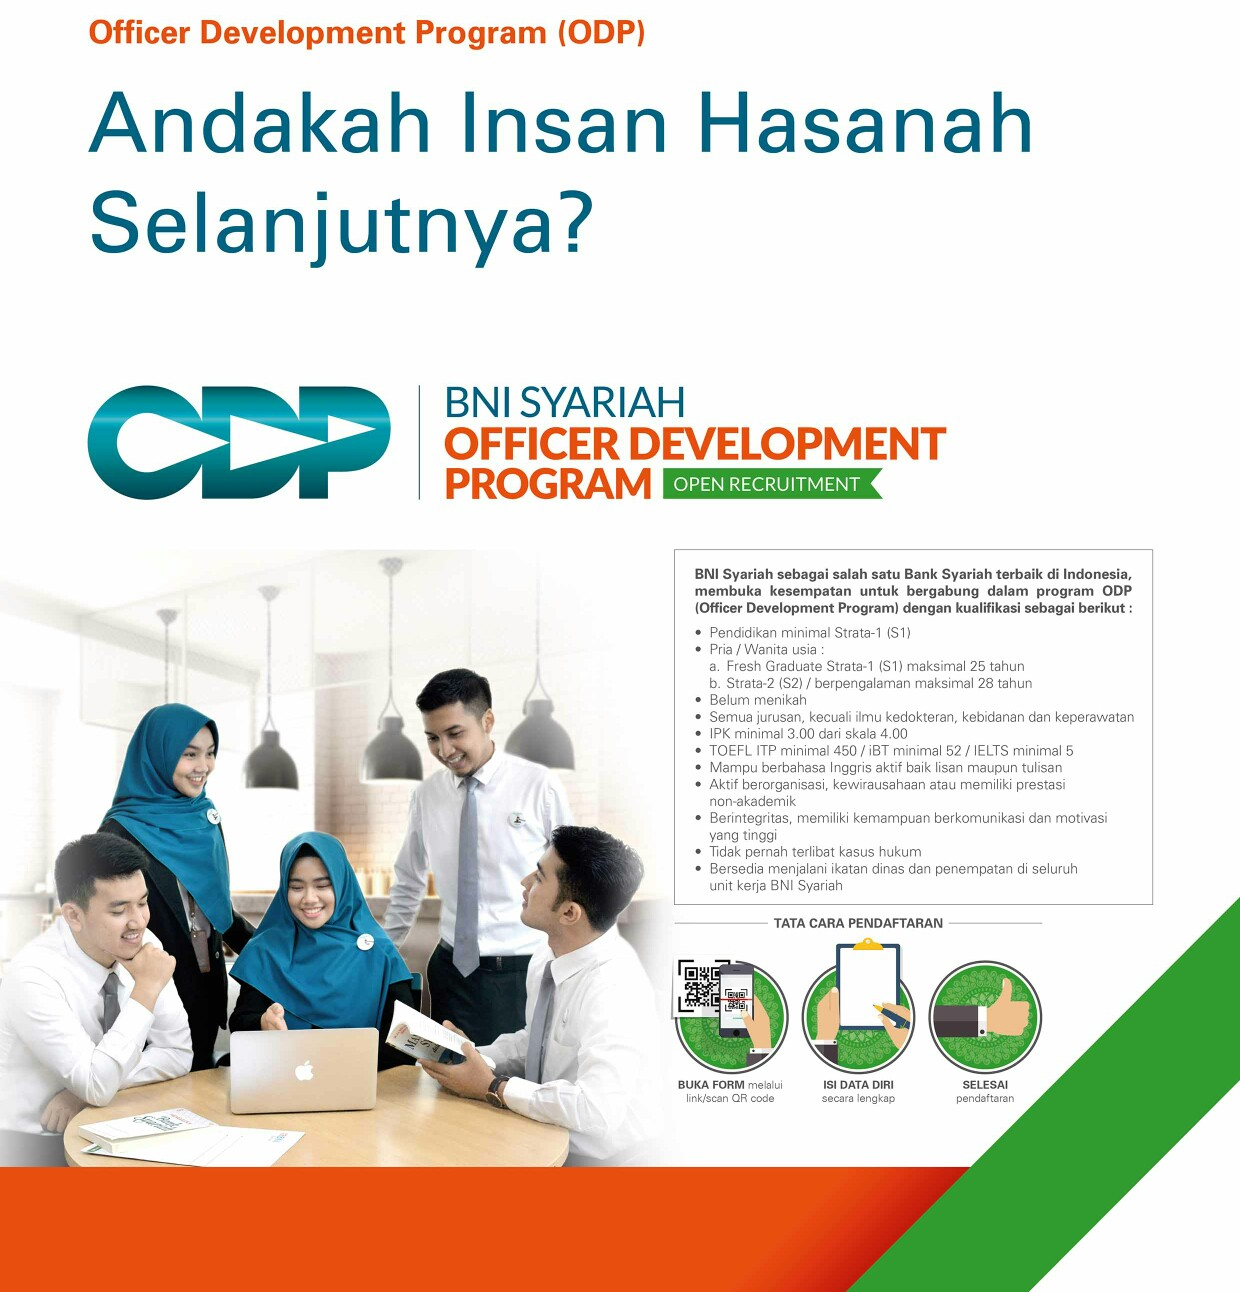 BNI Syariah Officer Development Program September 2018